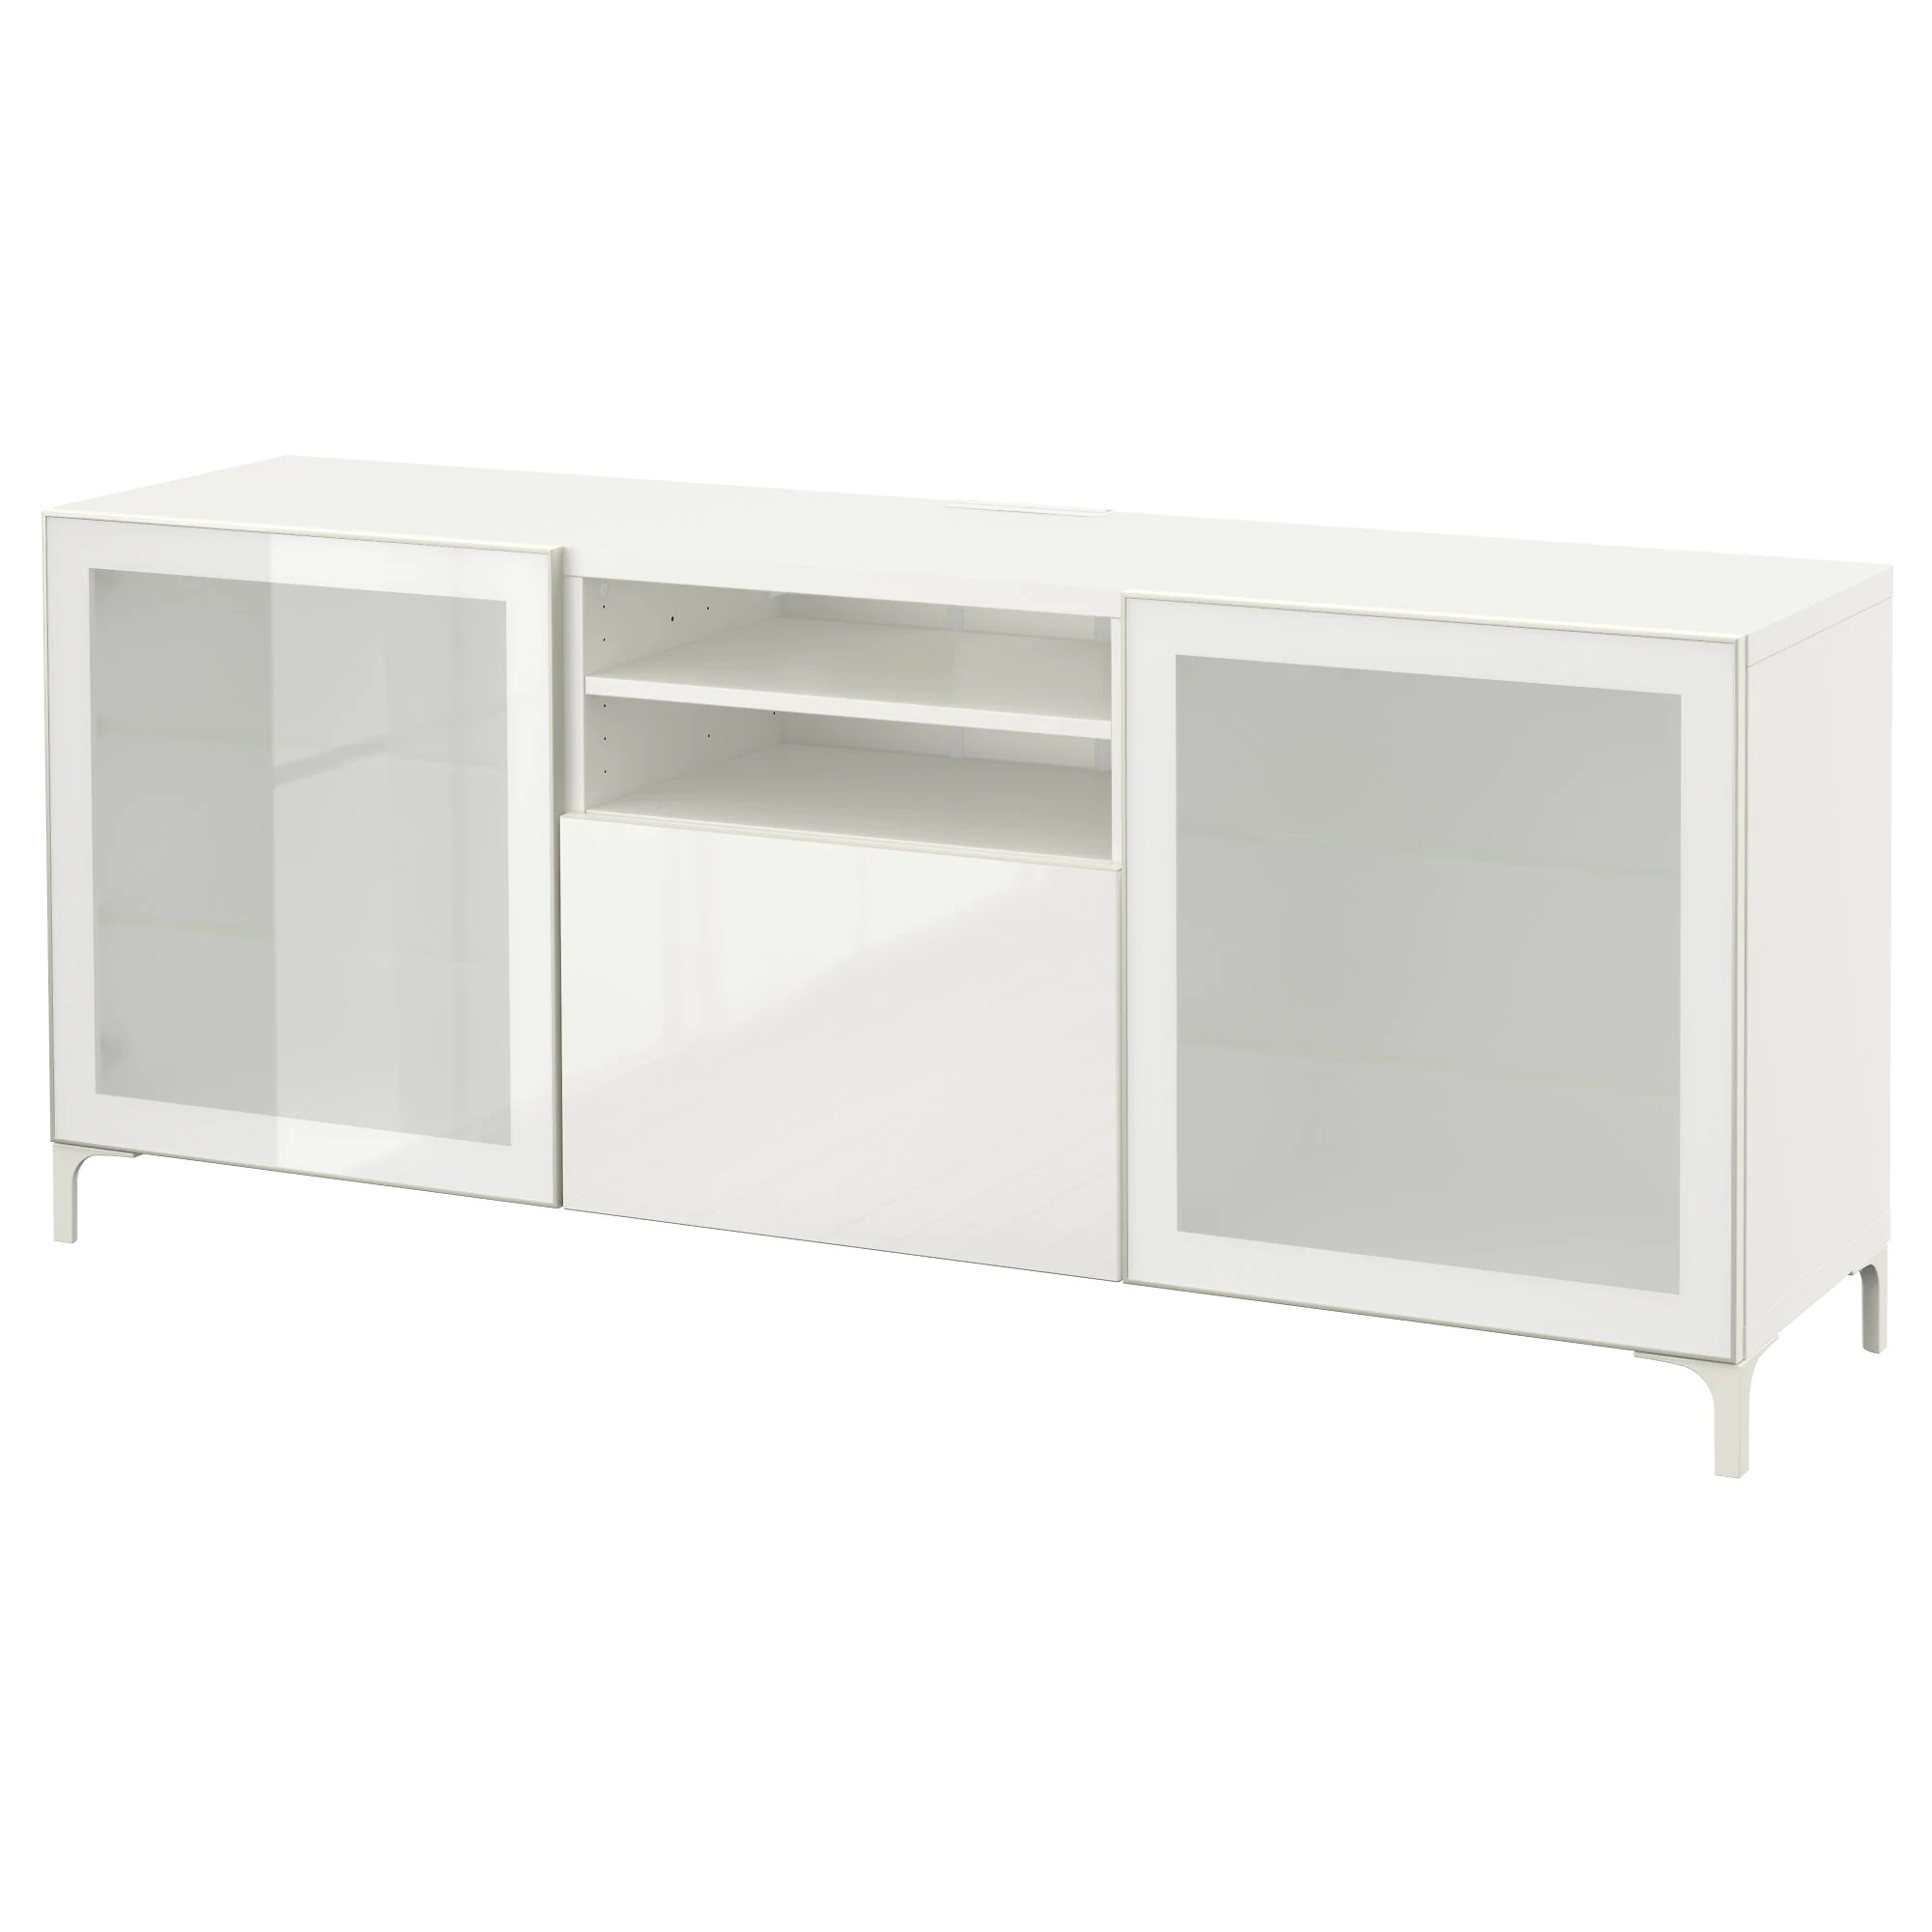 Ikea Tv Unit BestÅ Tv Unit With Drawers White Selsviken High Gloss White Frosted Glass